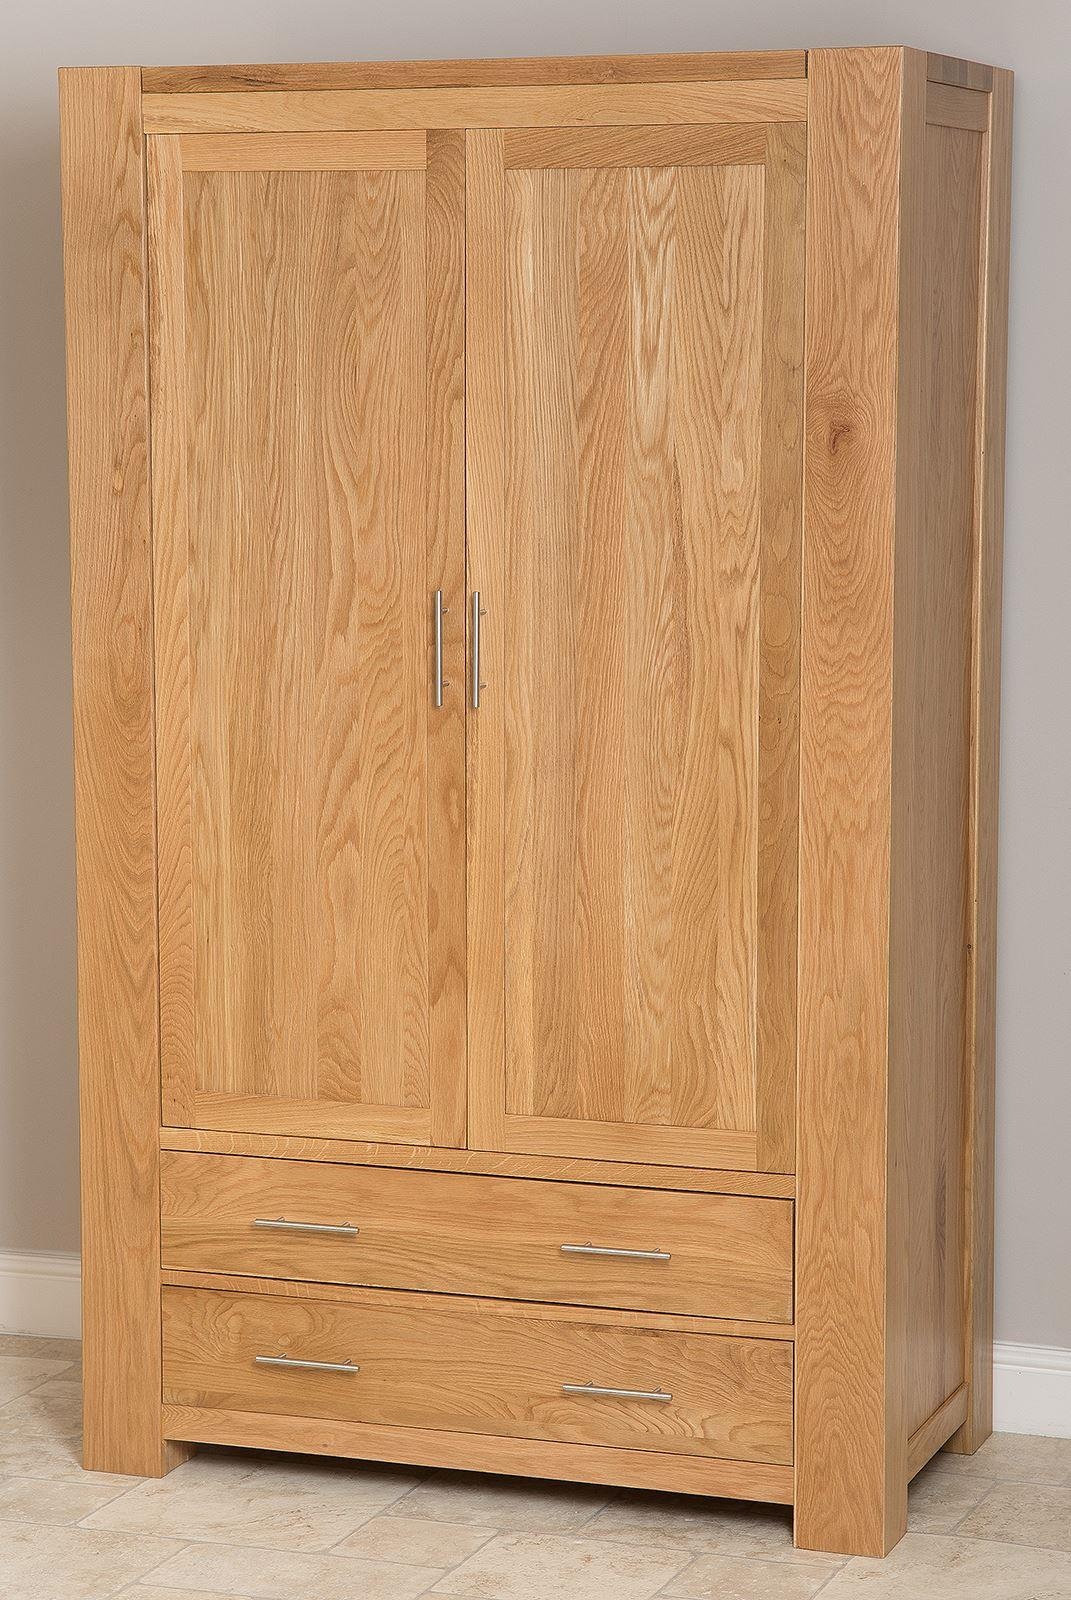 Kuba Solid Oak 2 Drawer Double Wardrobe